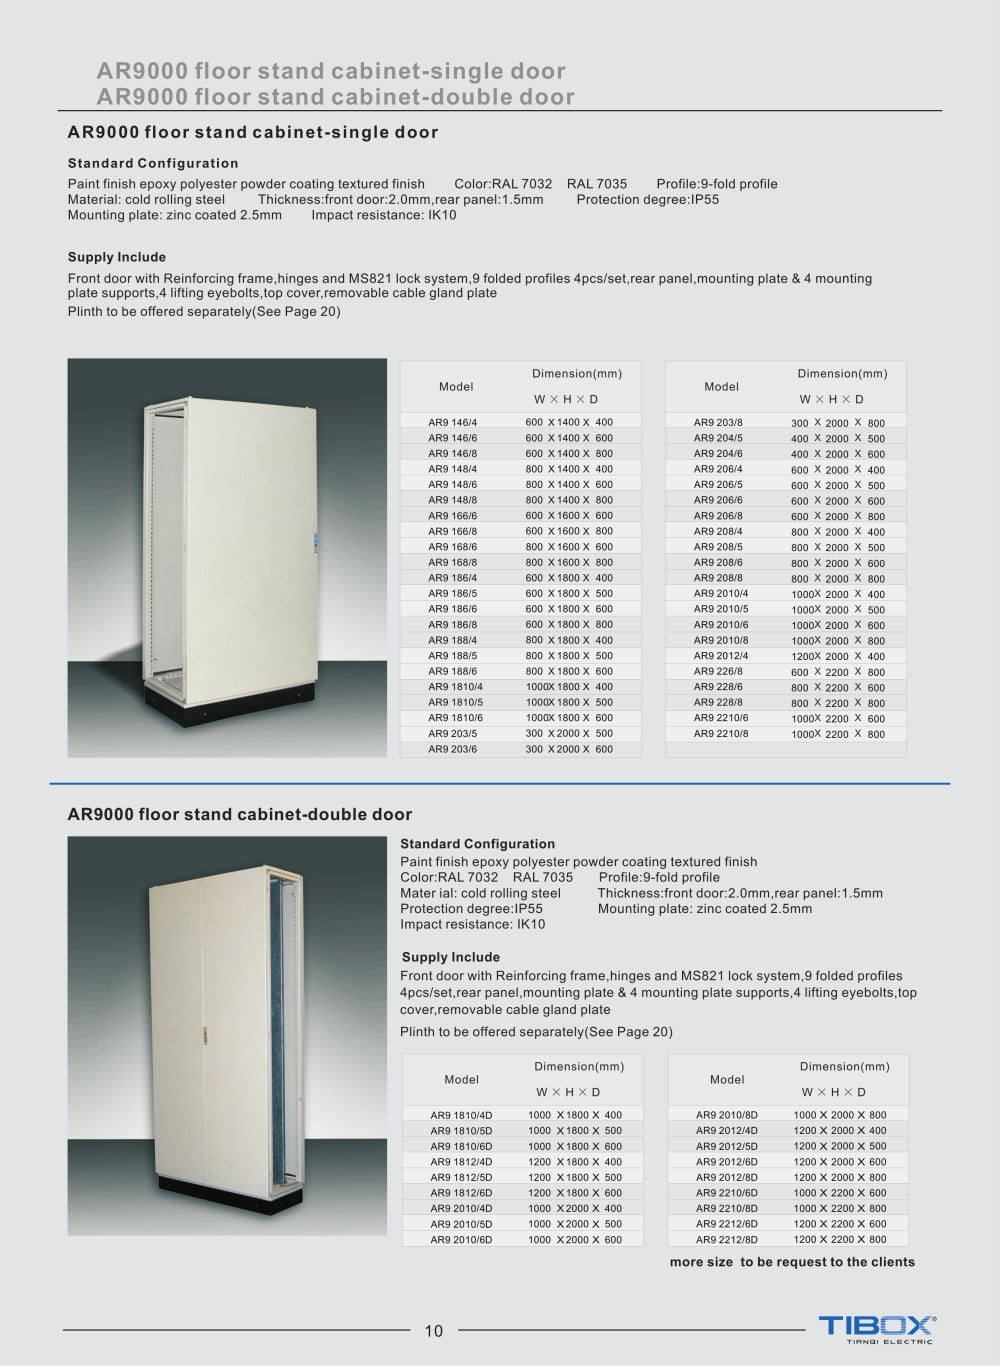 TIBOX steel floor standing cabinet electrical power control board  switchgear panel   1   3 Pages. TIBOX steel floor standing cabinet electrical power control board